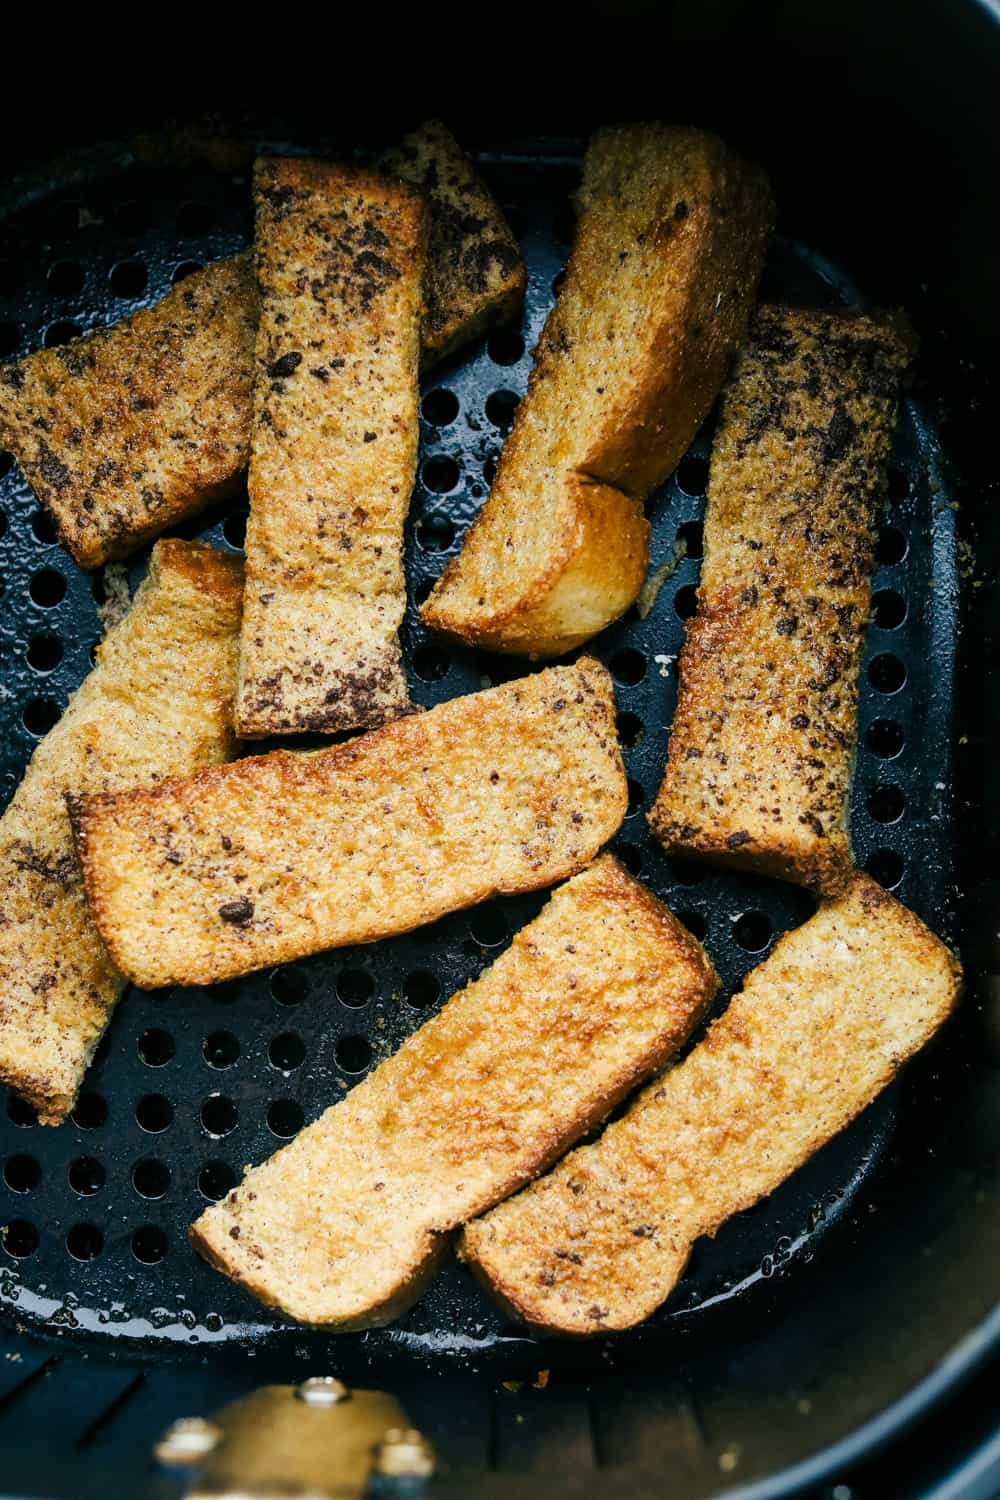 Golden brown french toast sticks.